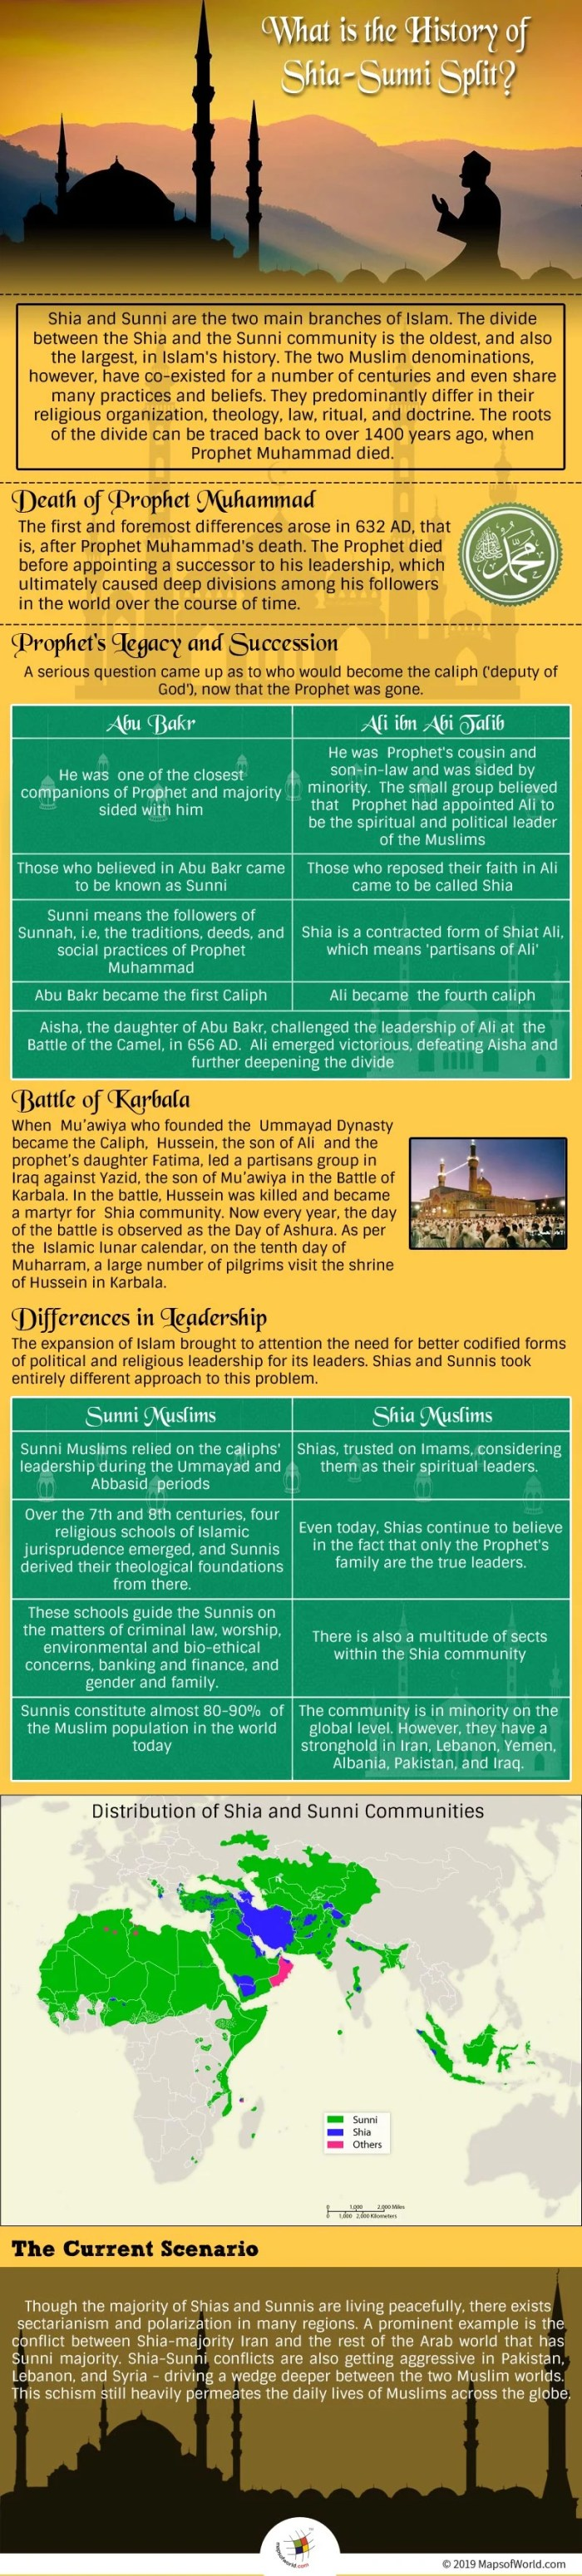 Infographic Showing The History of Shia-Sunni Split